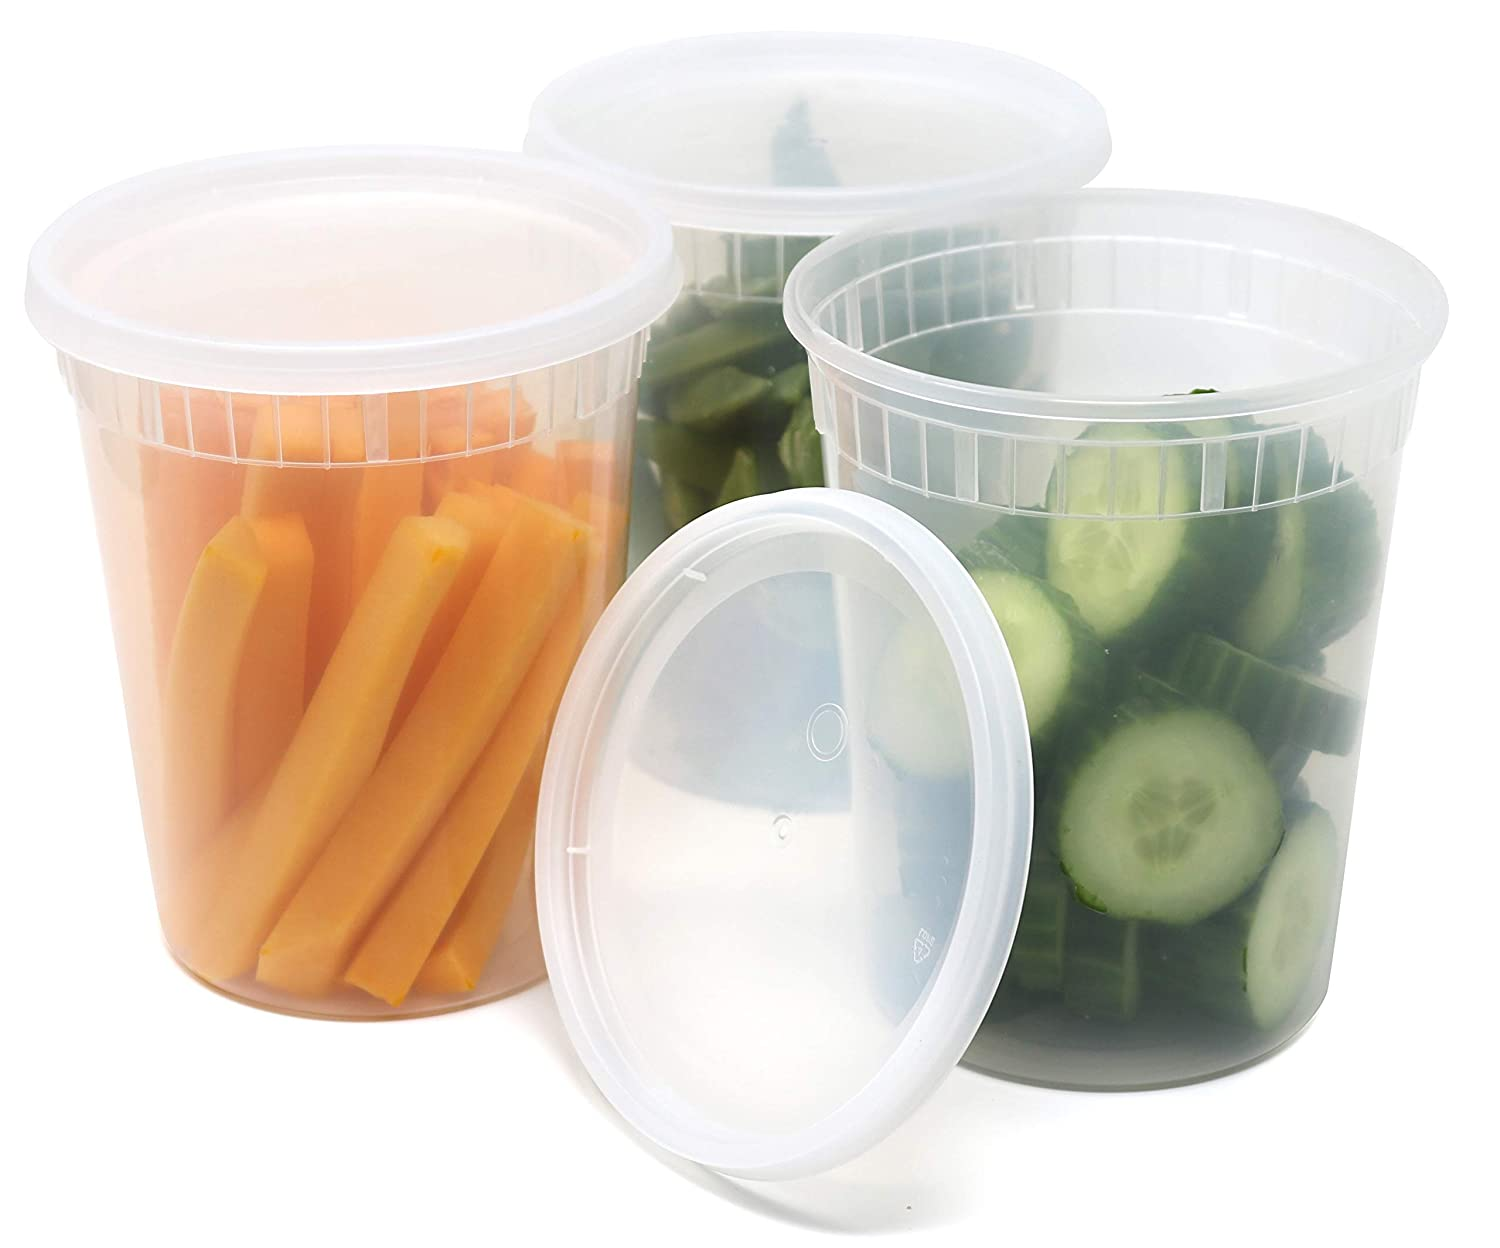 Eskay Plastic Food Storage Containers with Airtight Lids 32 oz.PP FoodSafe Plastic, BPA Free, Restaurant Deli Cups, Foodsavers, Baby Lunch Container, Portion Control, and Meal Prep Containers, 24 Pack